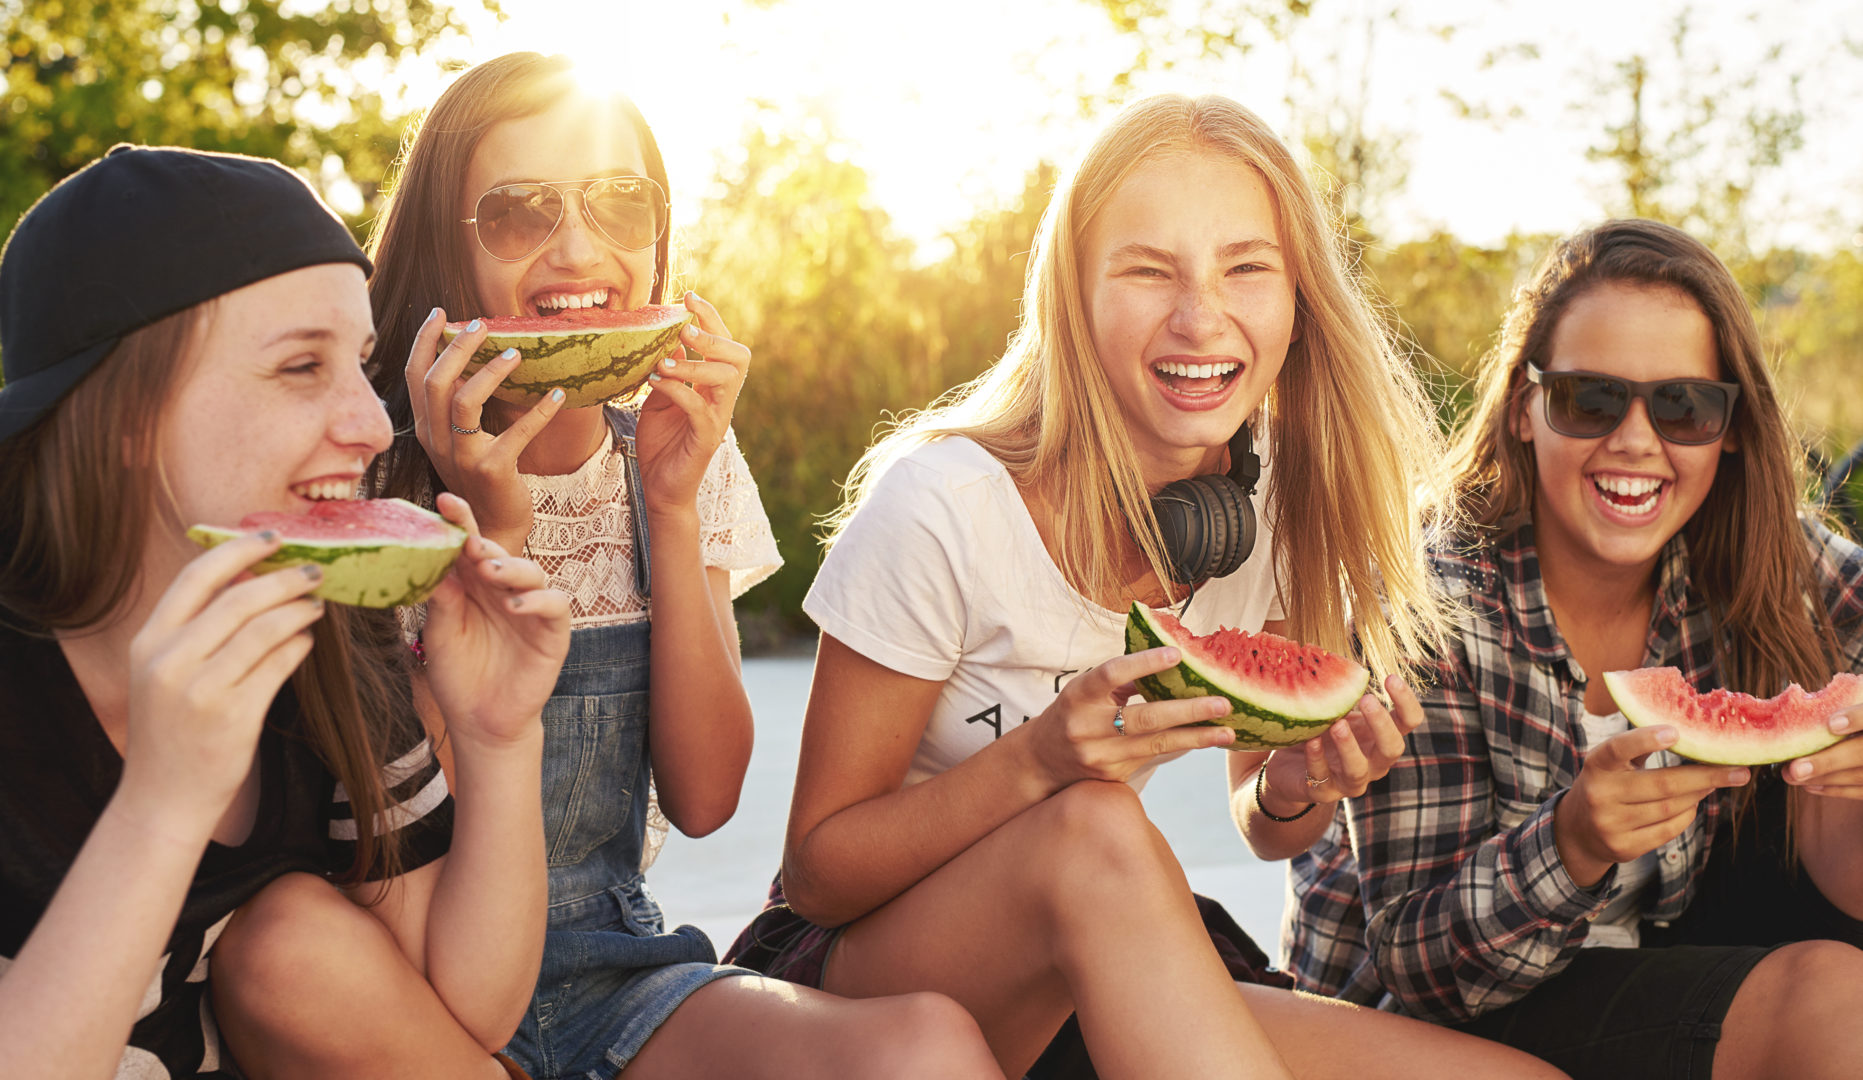 Group of teens sitting in grass eating watermelon